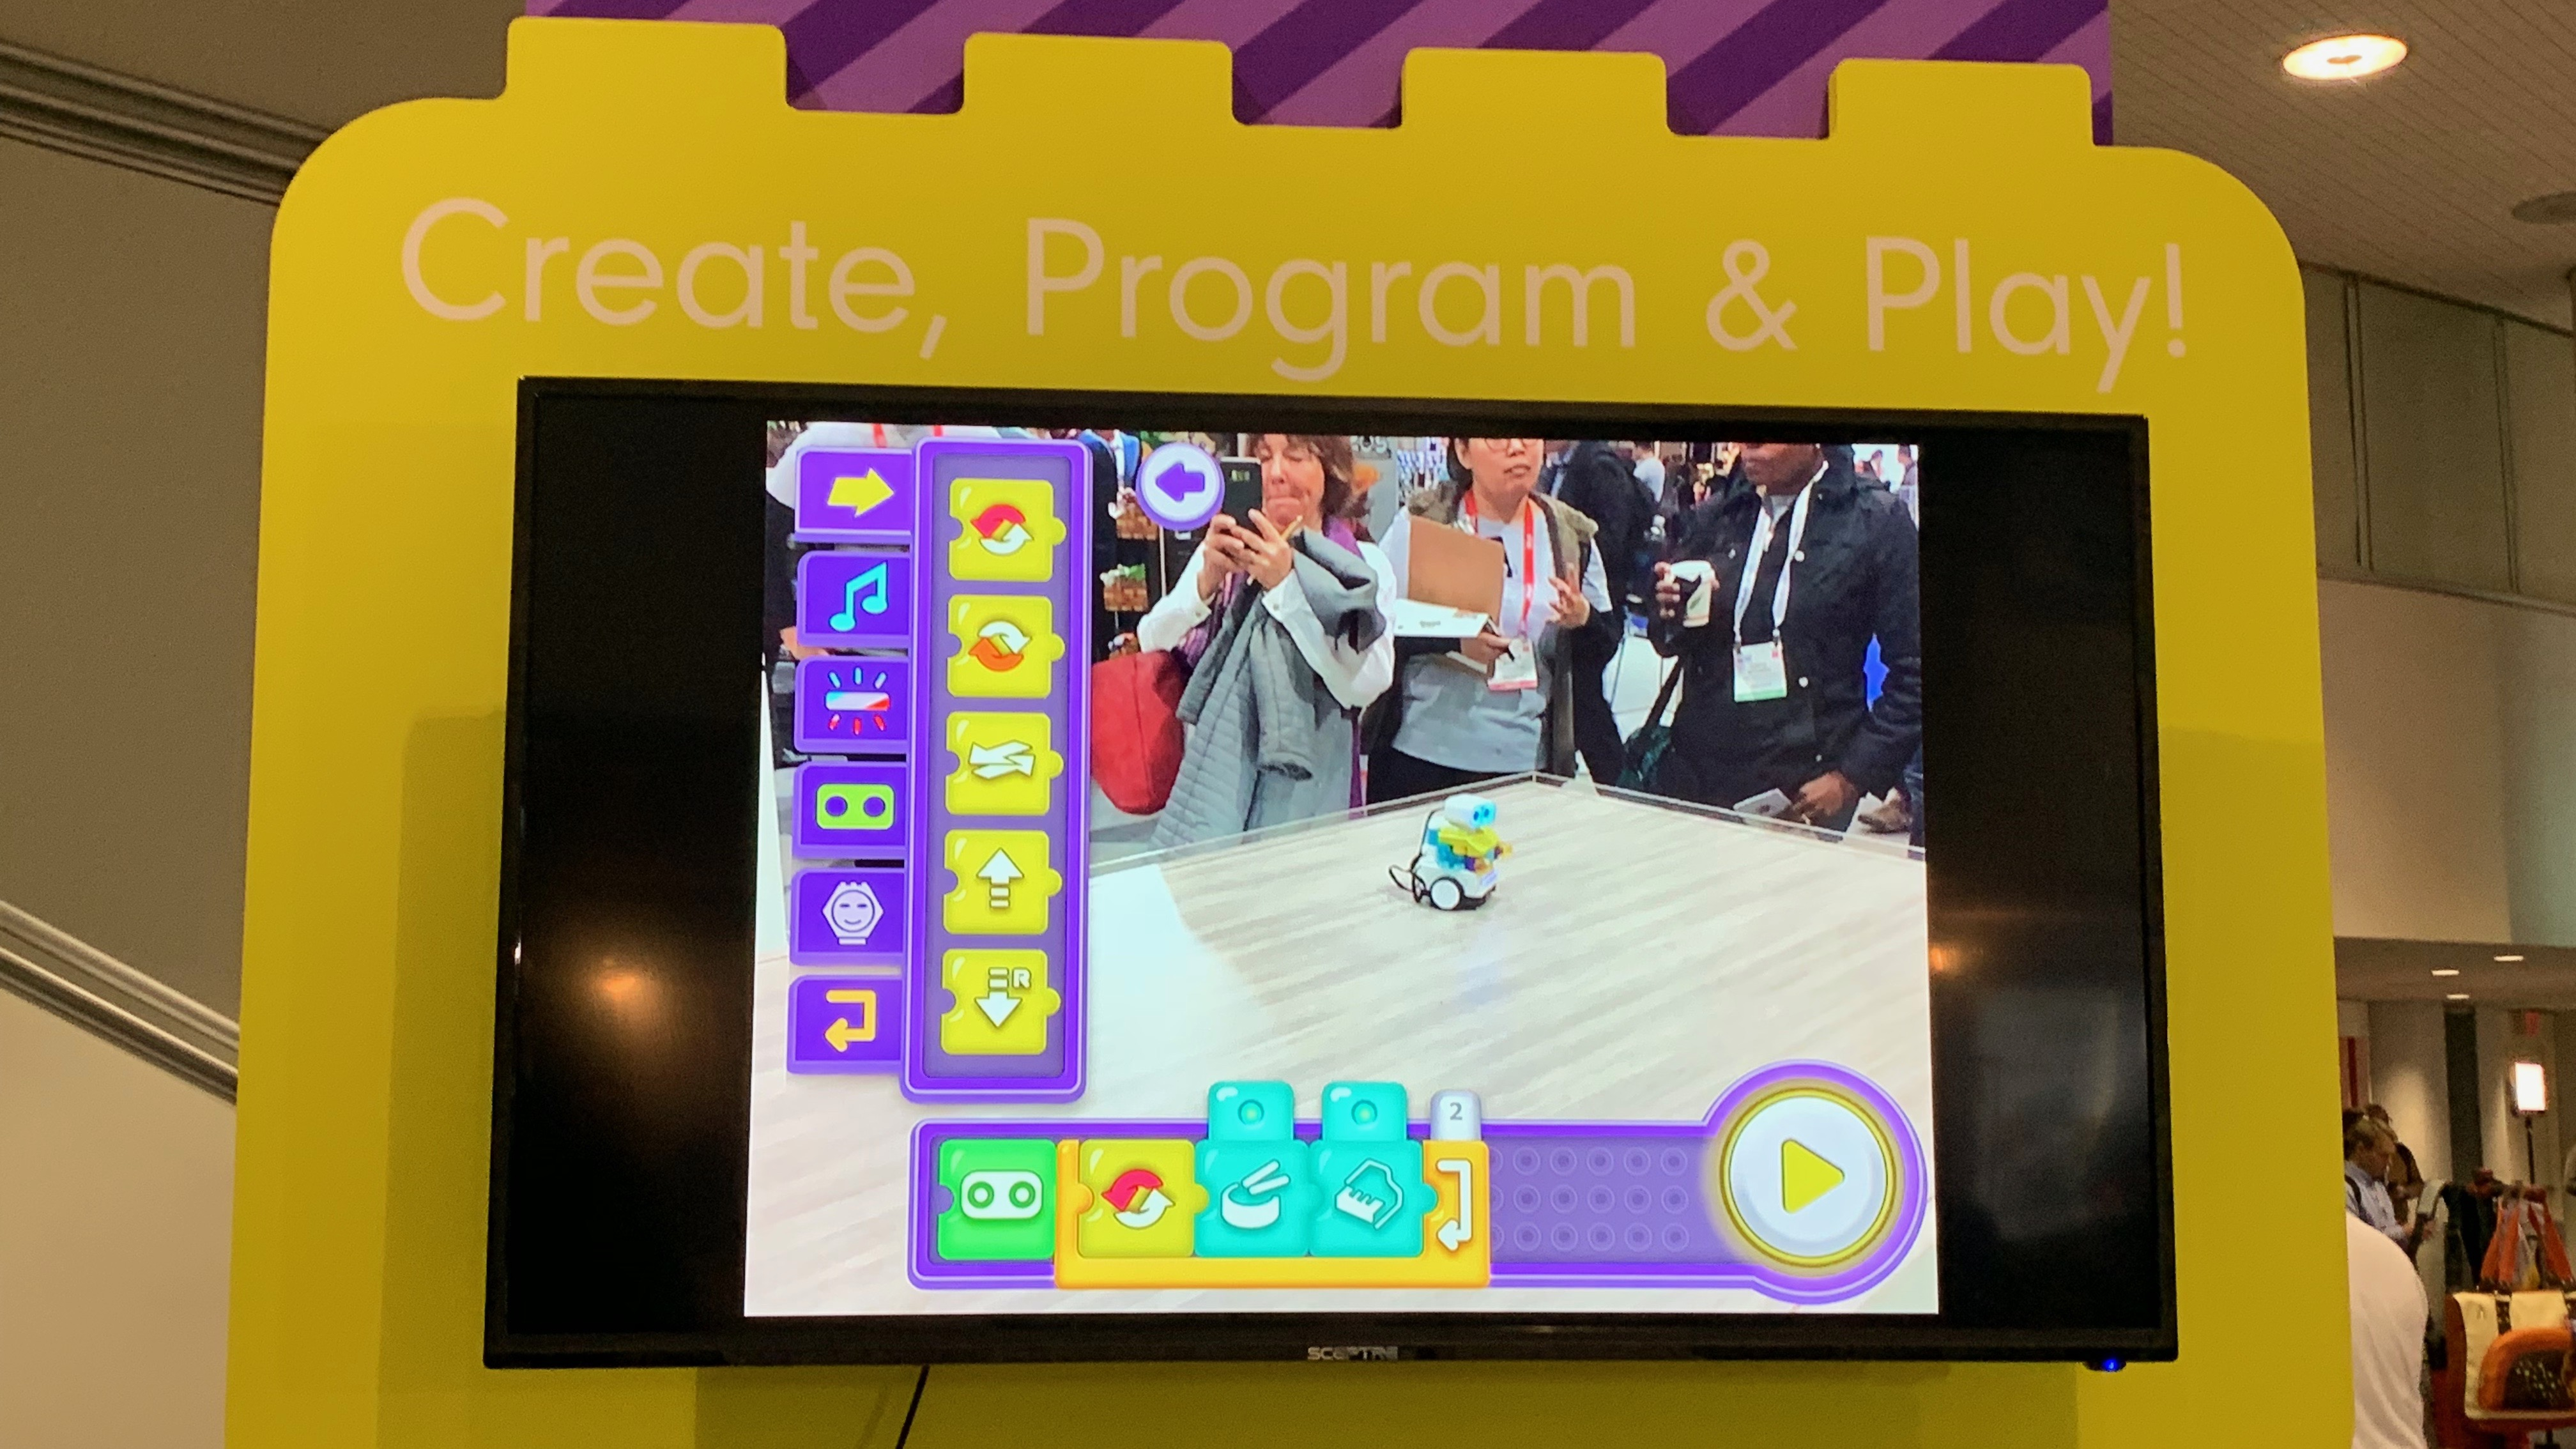 YhTApmA62Cs6RBKaNs5qFC - Tech toys 2019: the best new games and gadgets from the NYC Toy Fair